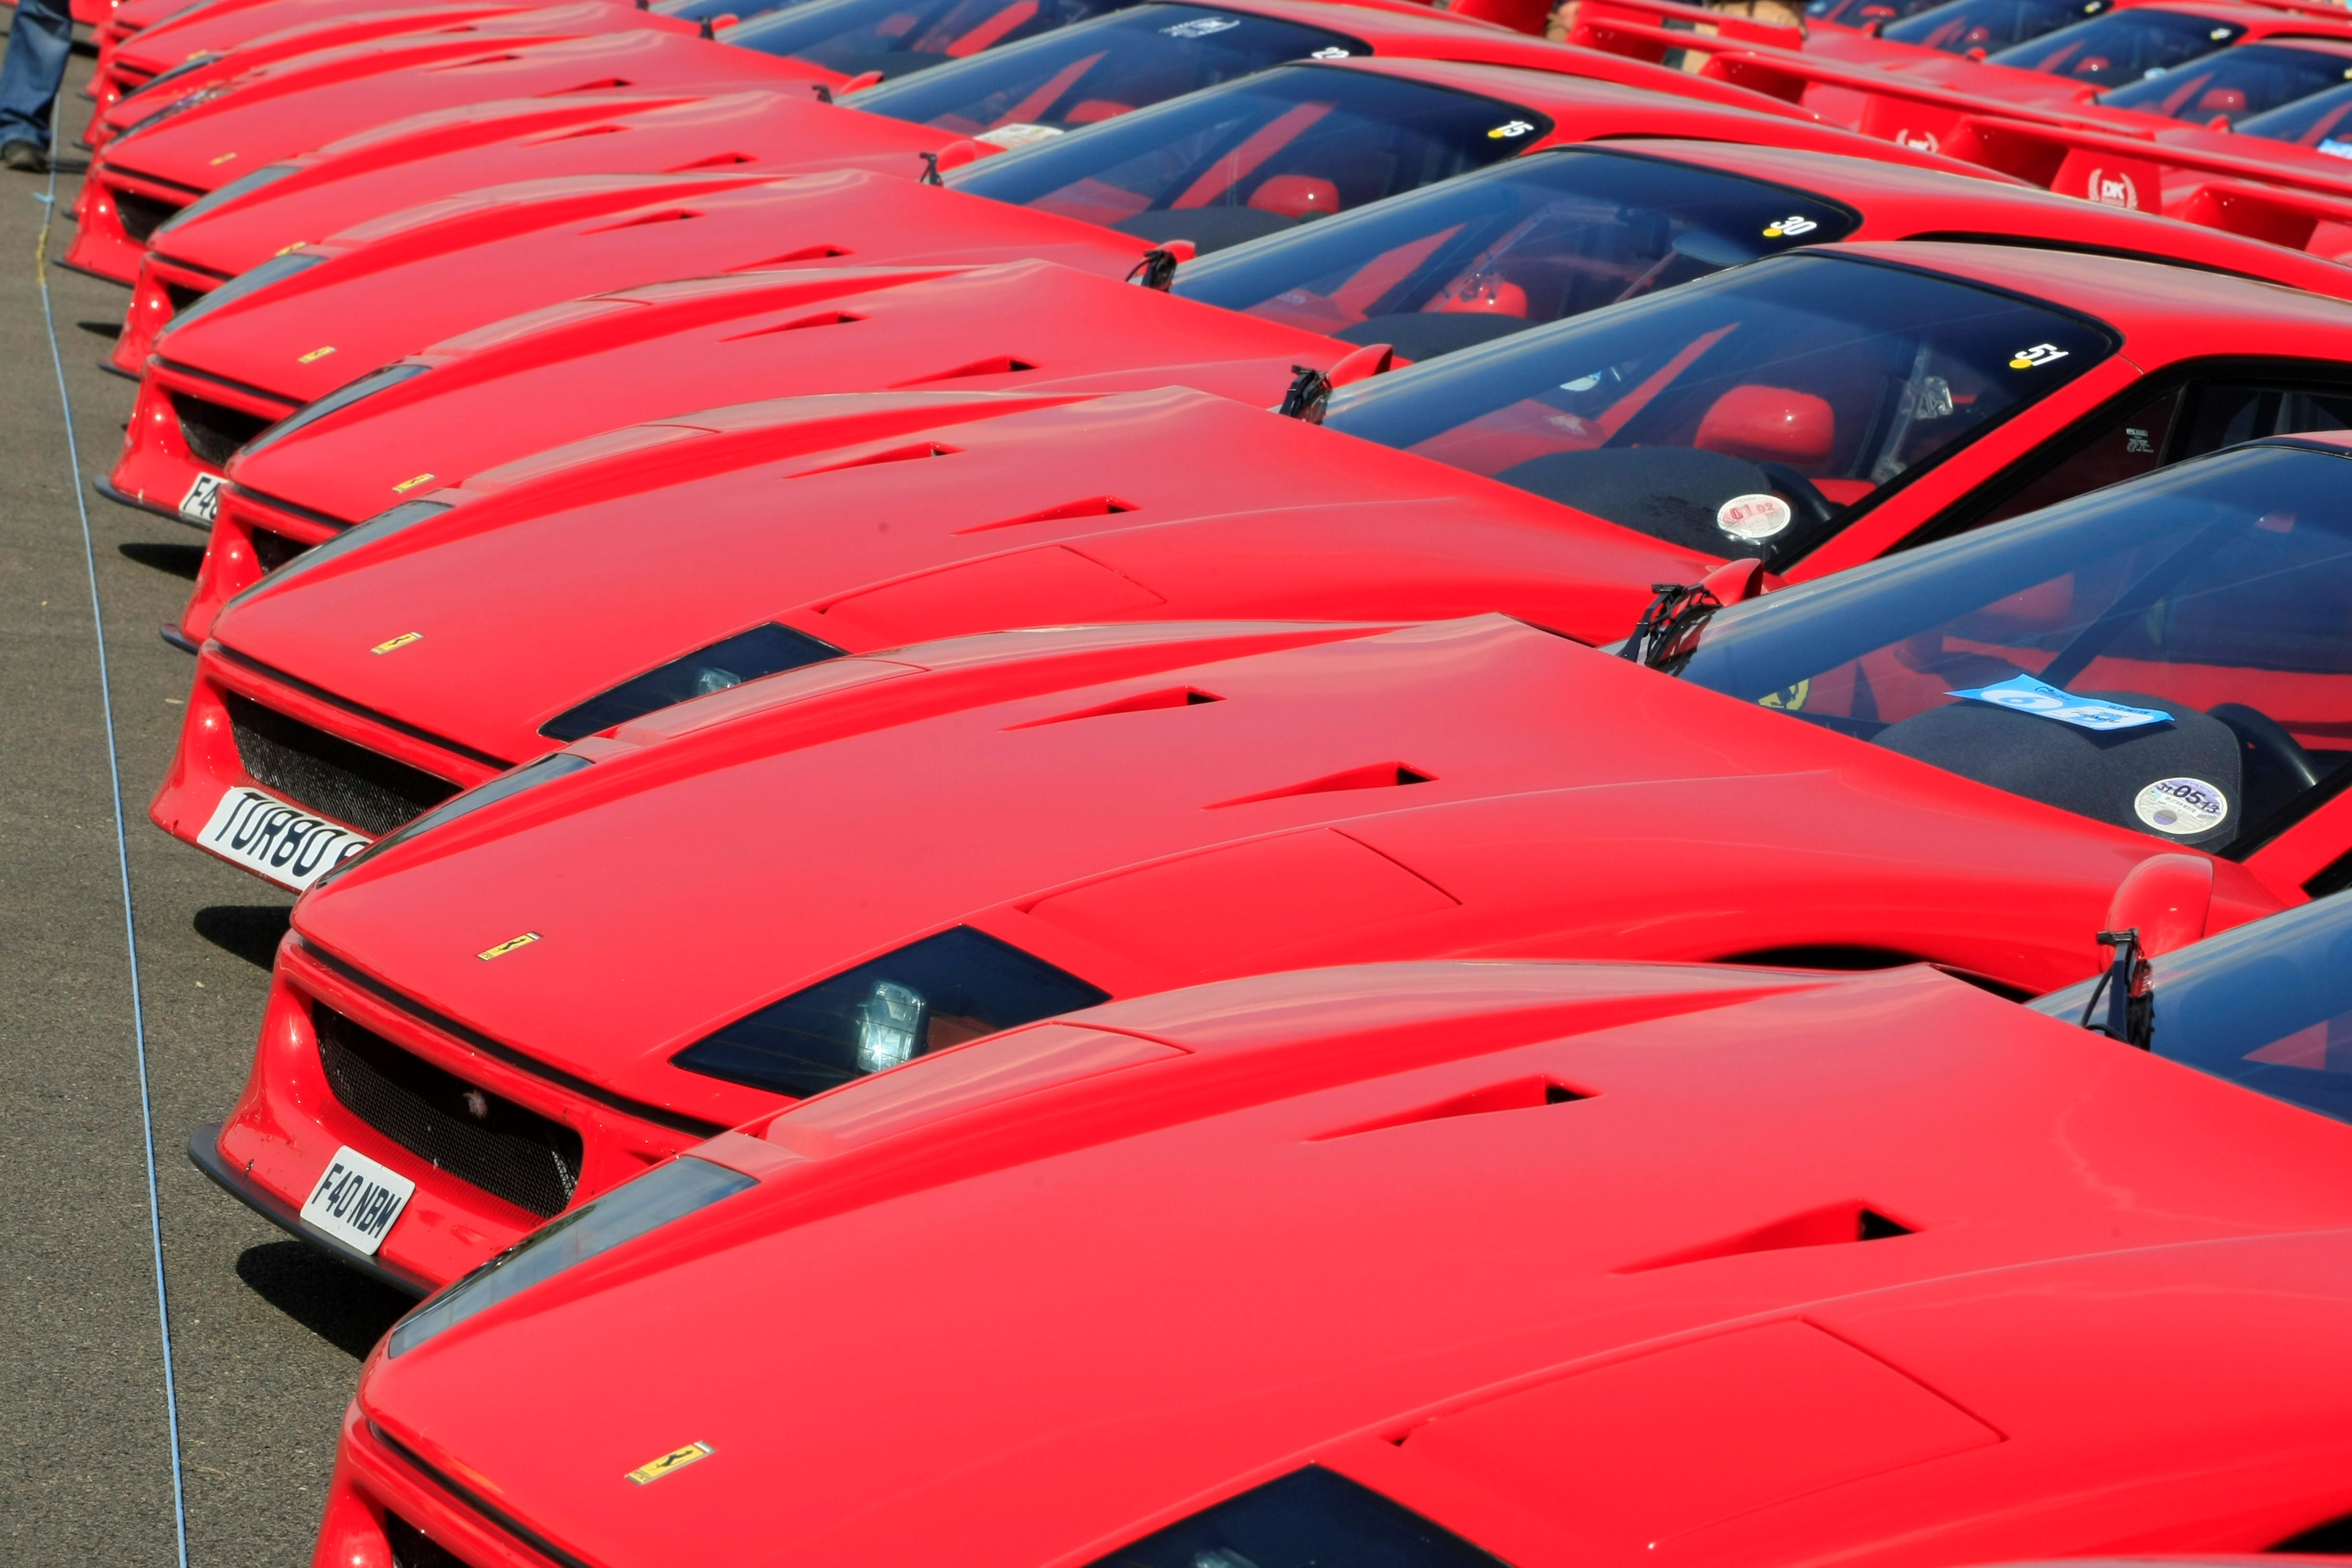 Revenues at Ferrari have jumped to £1bn as the super-rich buy luxury sports cars